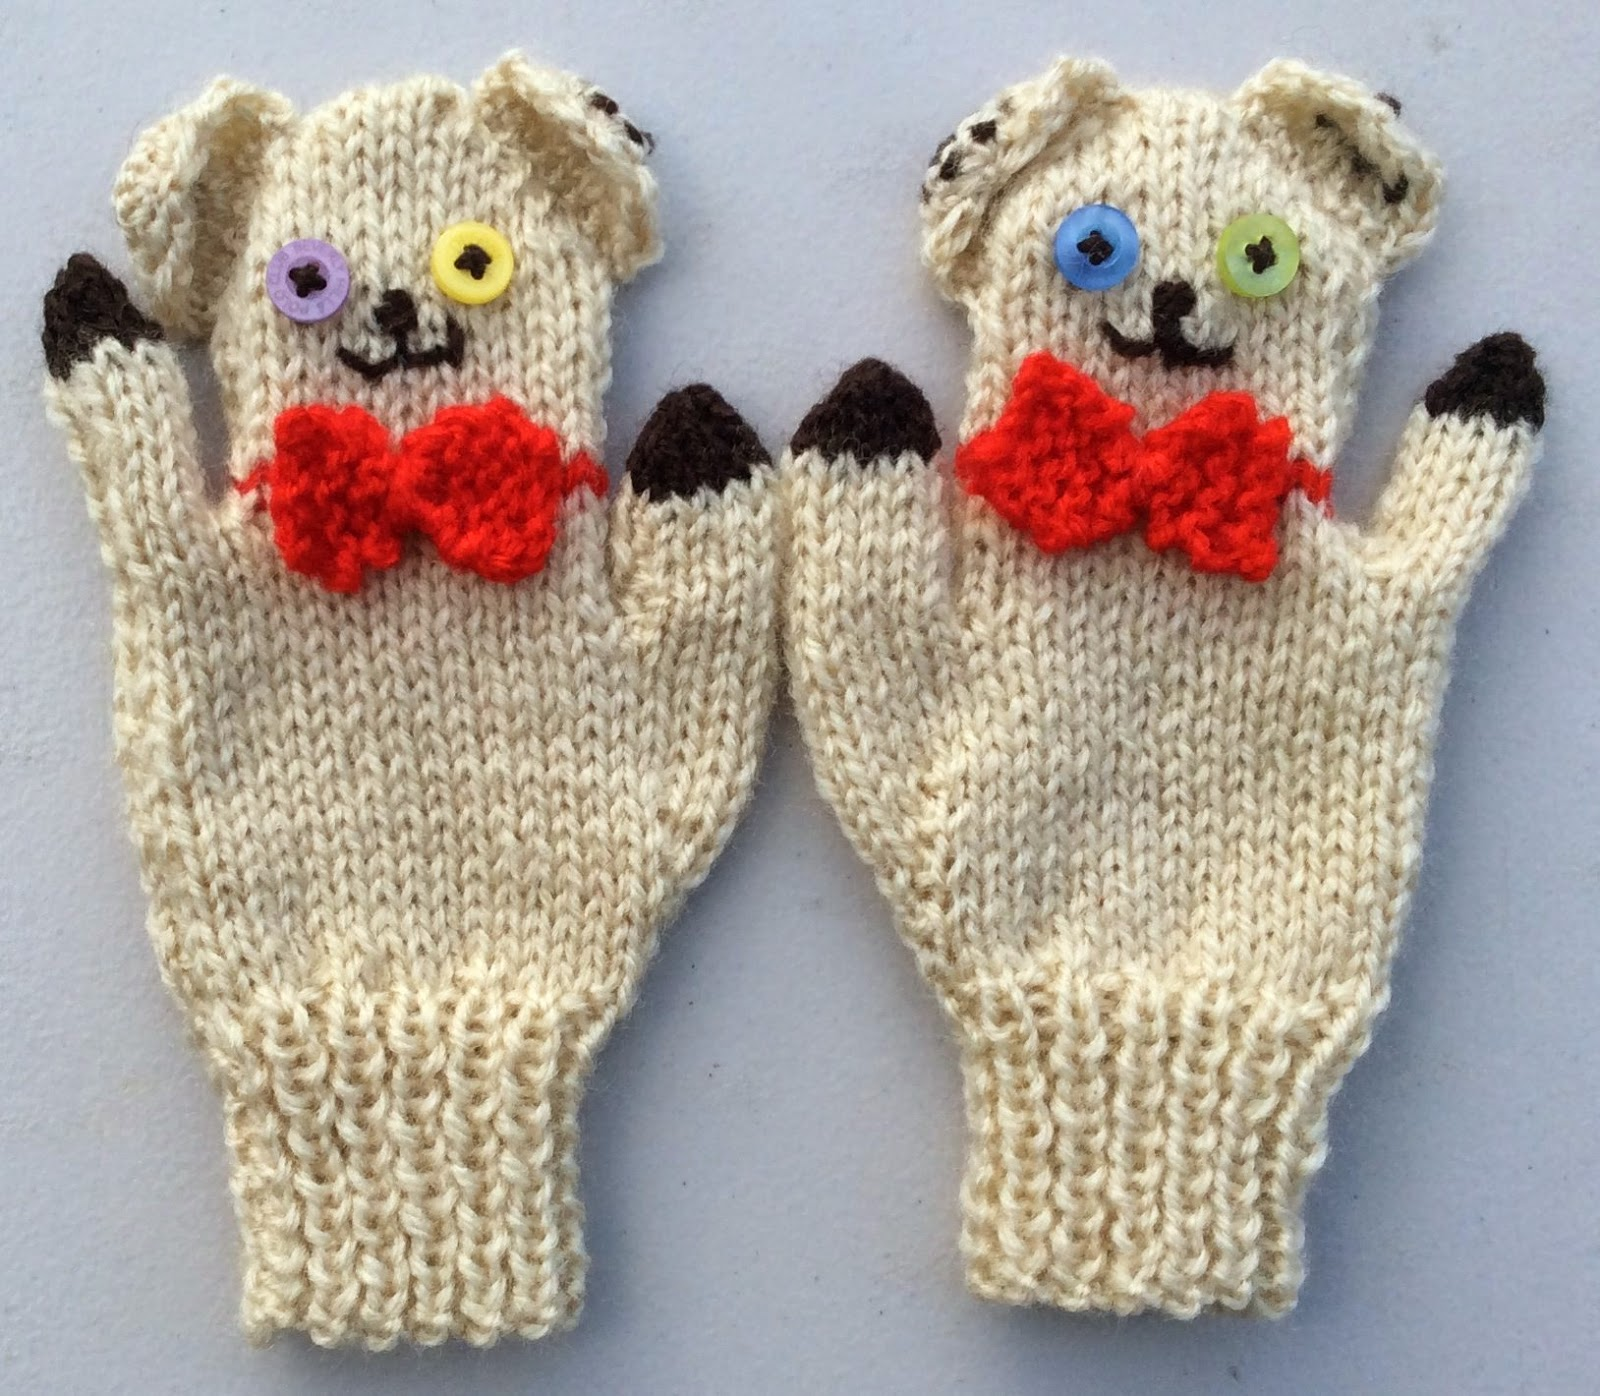 Puppet Gloves Knitting Pattern : bitstobuy: New fun knitting pattern for Child Animal Puppet Mittens